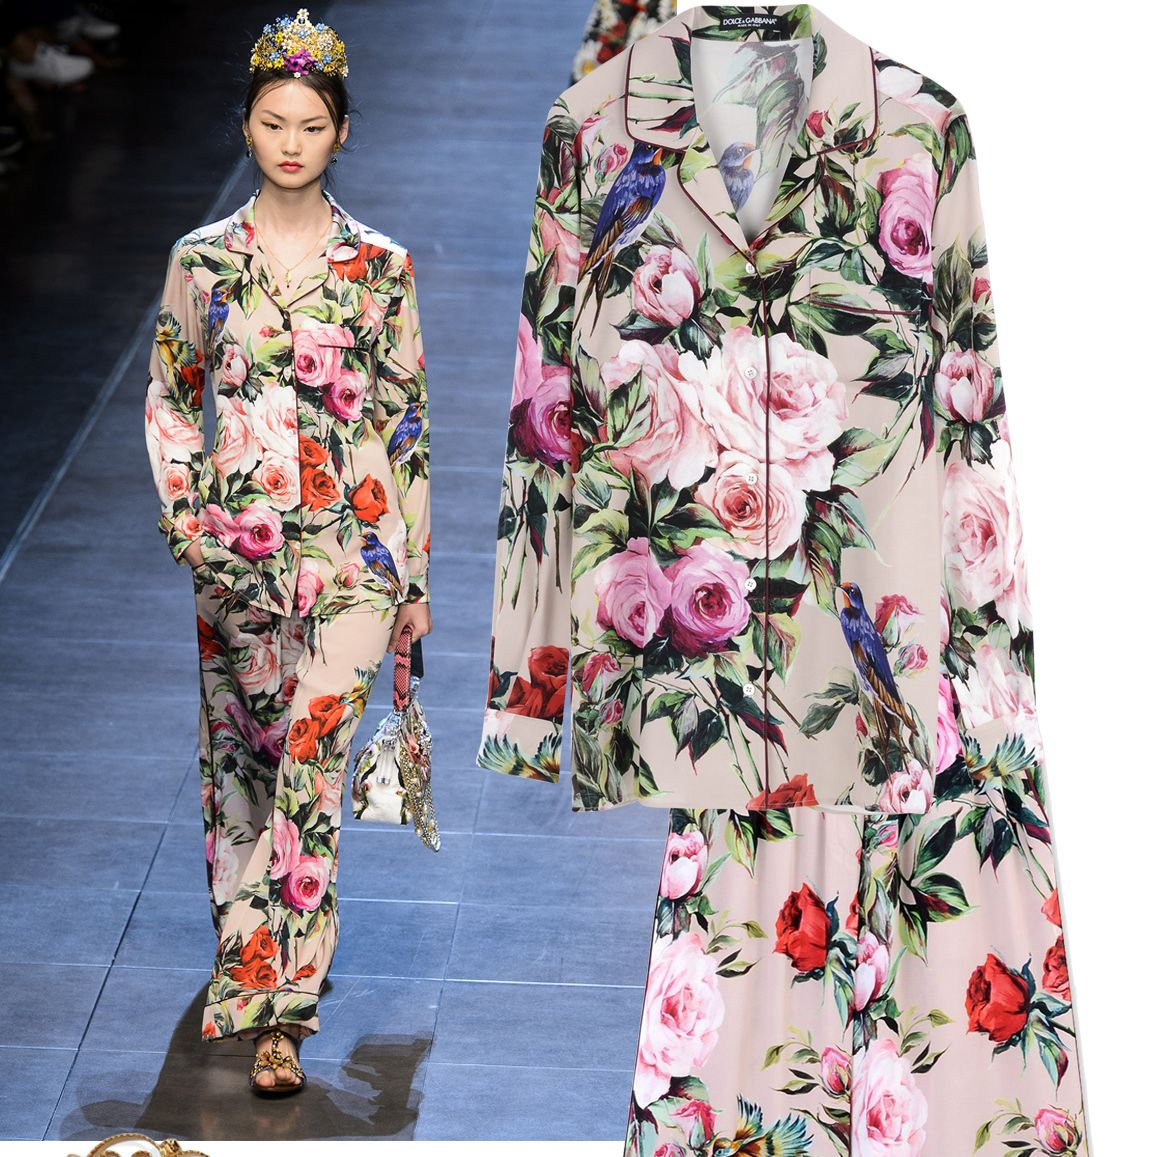 "<p>Pajama's are no longer reserved for the bedroom.</p><p><em><strong>Dolce & Gabbana</strong> earrings, $345, <strong><a href=""https://shop.harpersbazaar.com/designers/d/dolce-and-gabbana/earrings-8710.html"" target=""_blank"">shopBAZAAR.com</a></strong>&#x3B; <strong>Dolce & Gabbana</strong> printed top, $1,595, <strong><a href=""https://shop.harpersbazaar.com/designers/d/dolce-and-gabbana/long-sleeve-shirt-8716.html"" target=""_blank"">shopBAZAAR.com</a></strong>&#x3B; <strong>Dolce & Gabbana</strong> printed pant, $1,595, <strong><a href=""https://shop.harpersbazaar.com/designers/d/dolce-and-gabbana/pink-floral-printed-pant-8618.html"" target=""_blank"">shopBAZAAR.com</a></strong><span class=""redactor-invisible-space"">.</span></em><em> </em><br></p>"